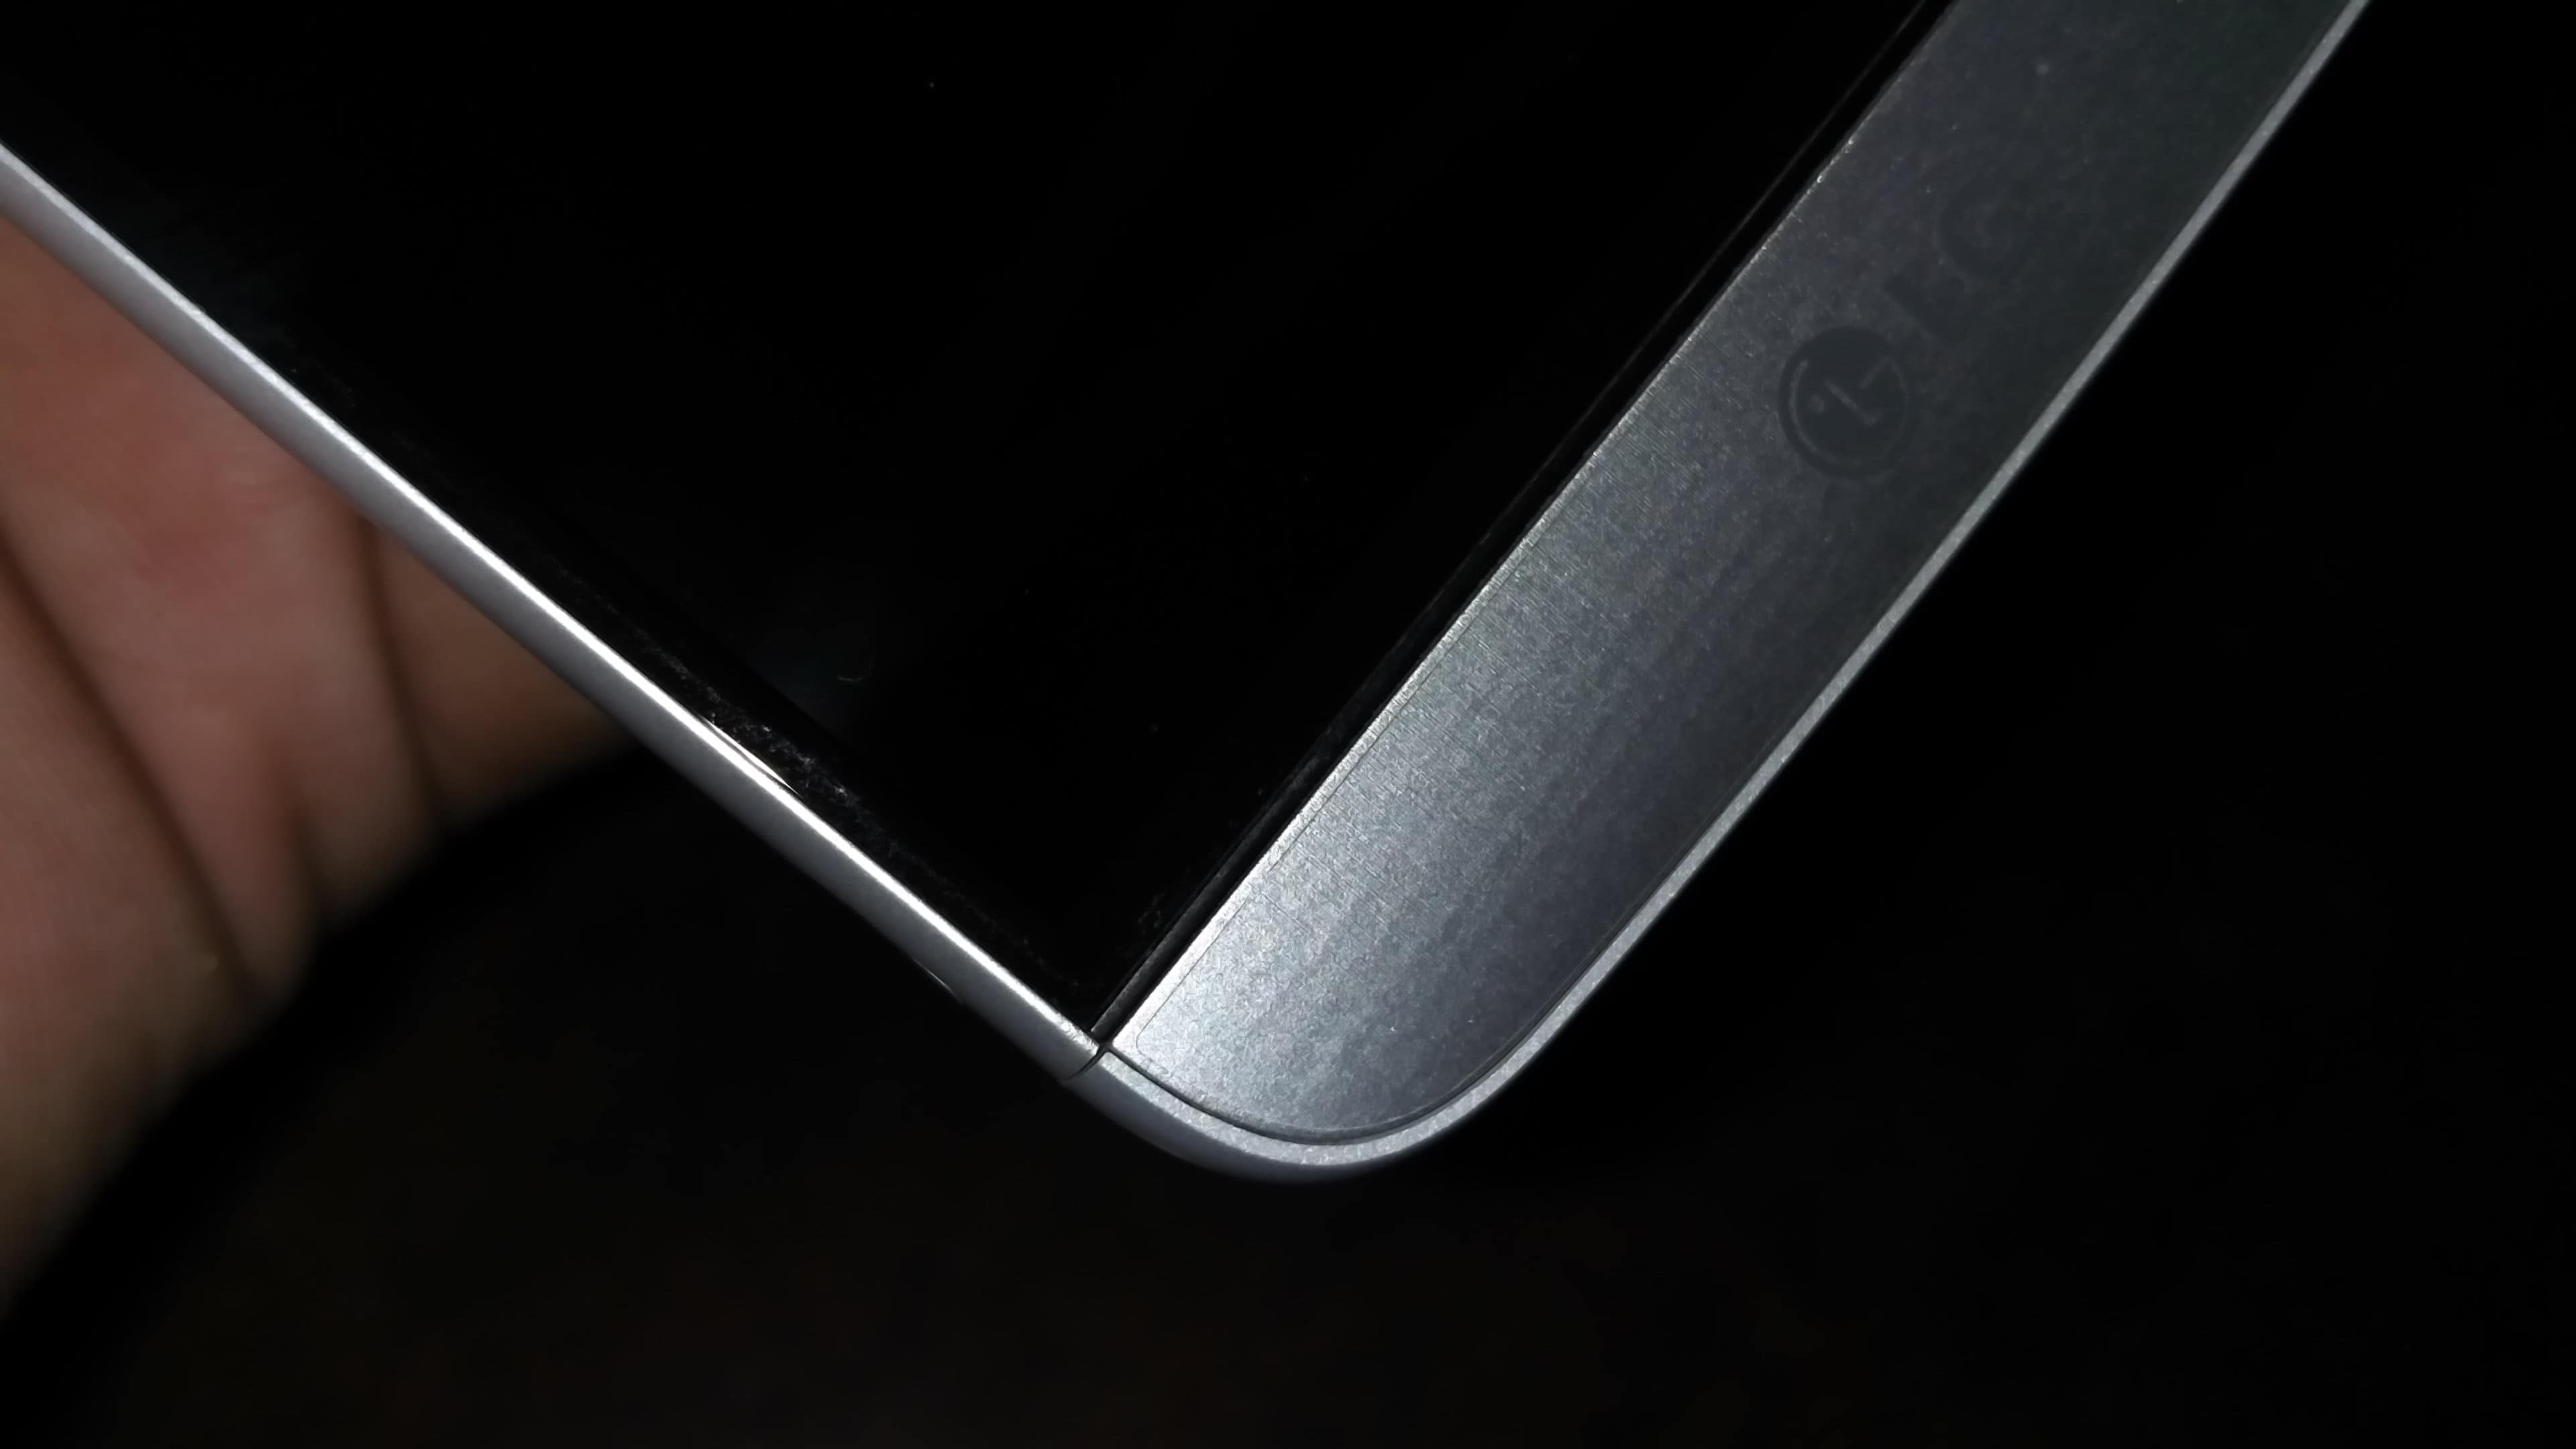 lg-g5-curves-at-side